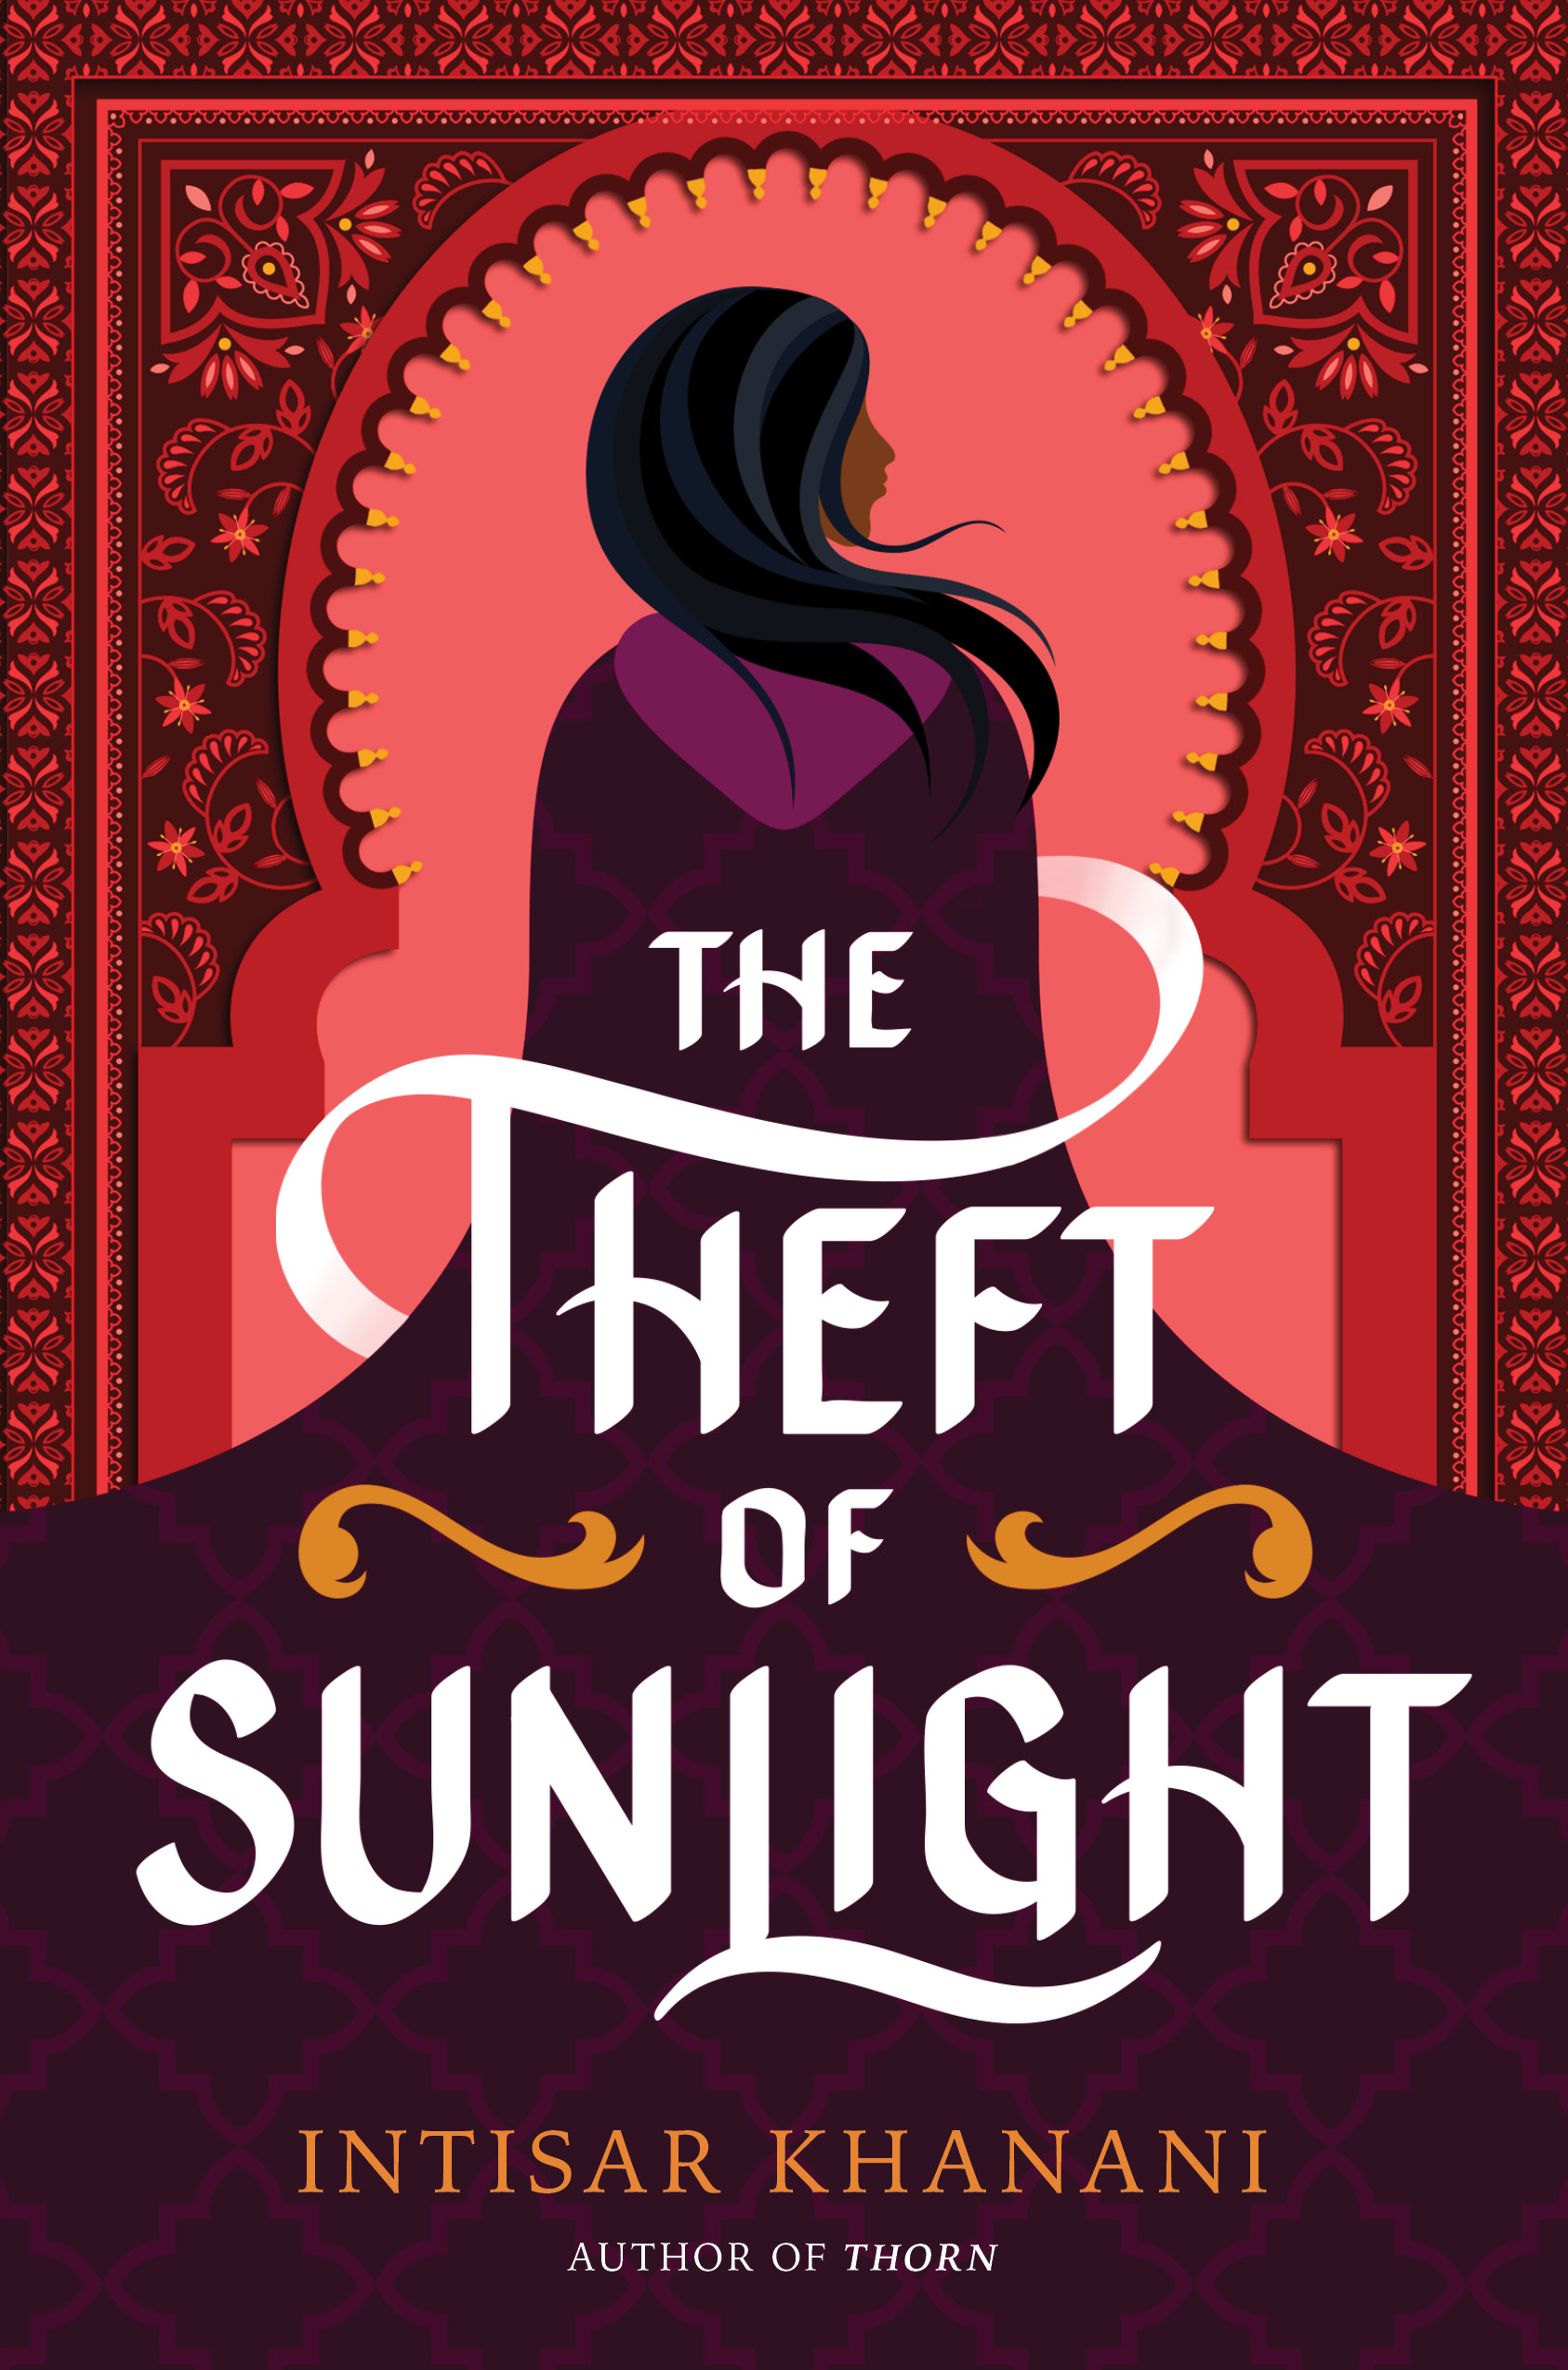 The Theft of Sunlight by Intisar Khanani